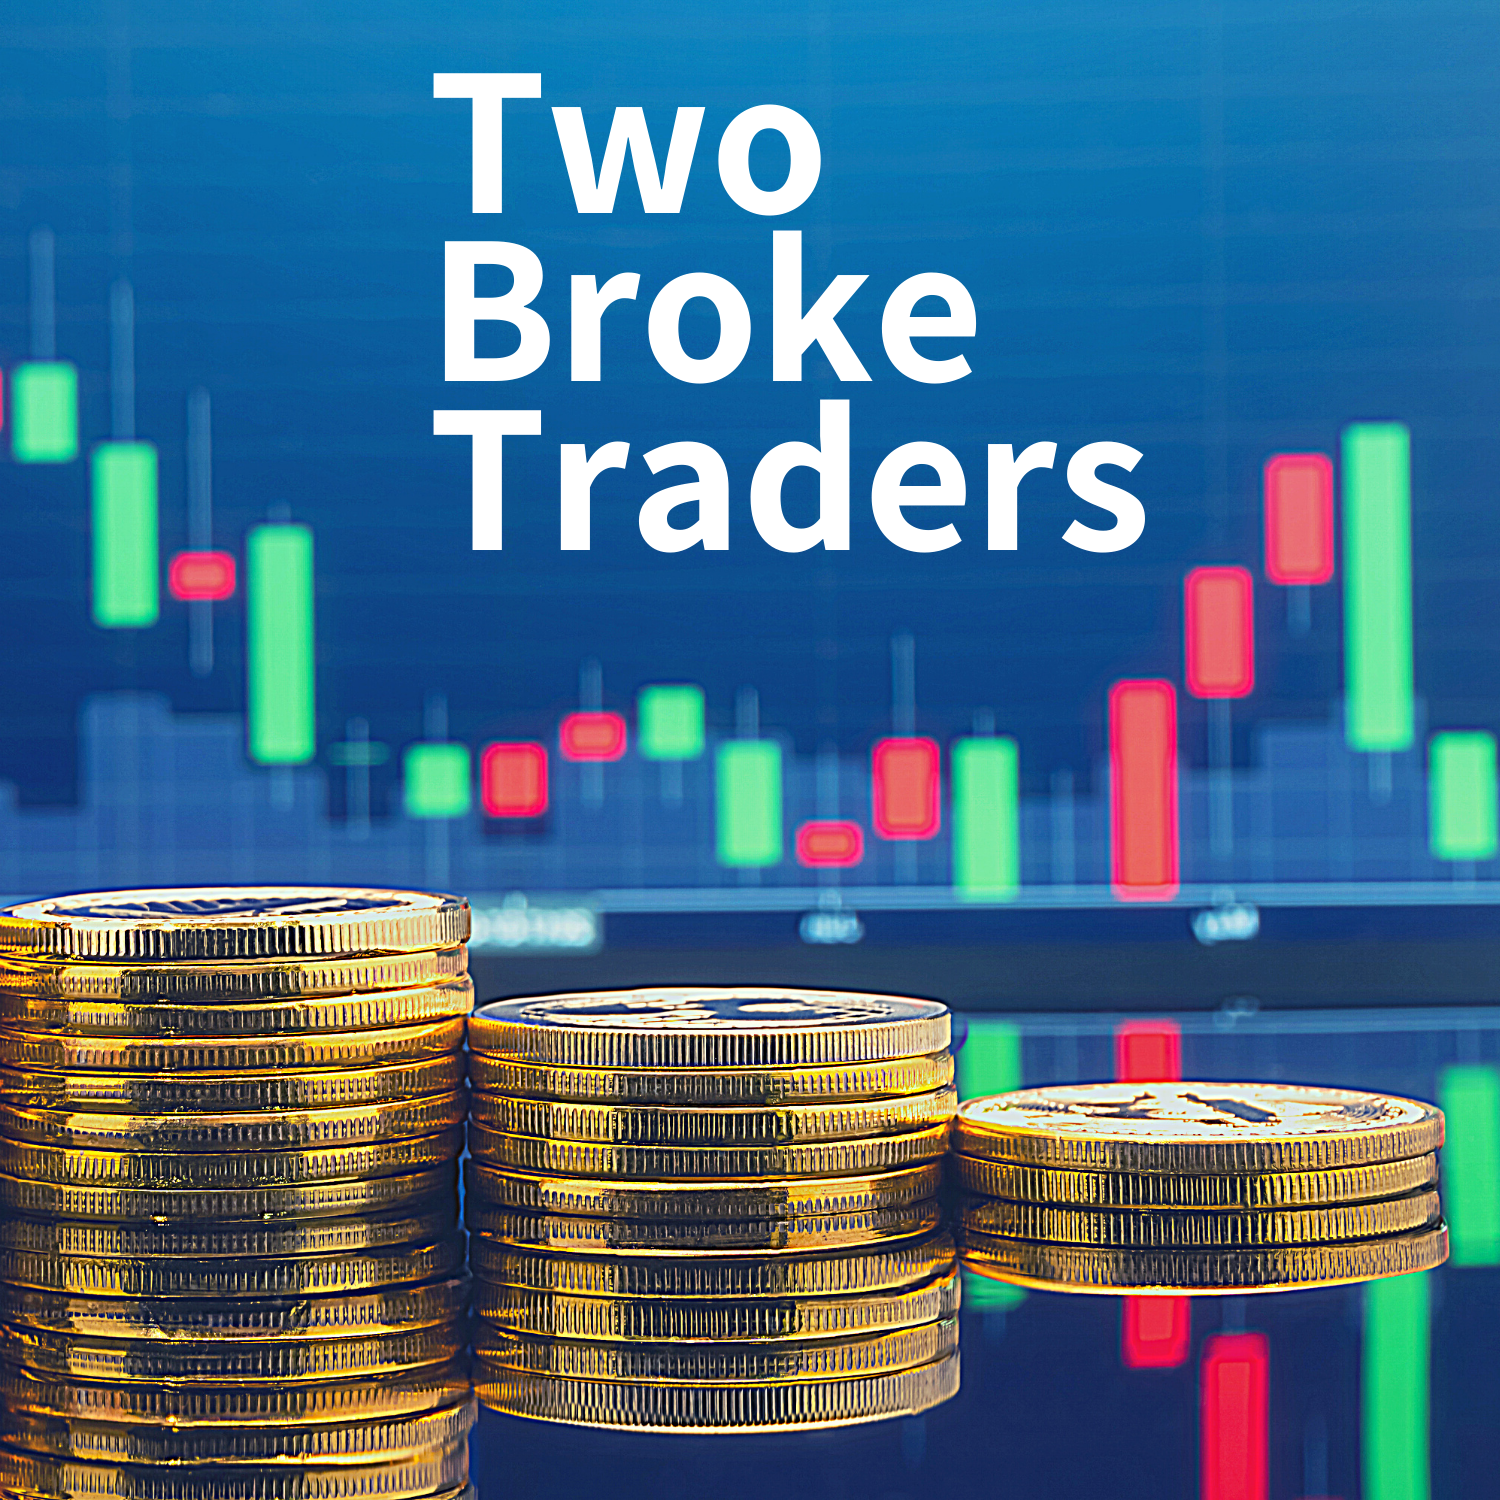 Two Broke Traders